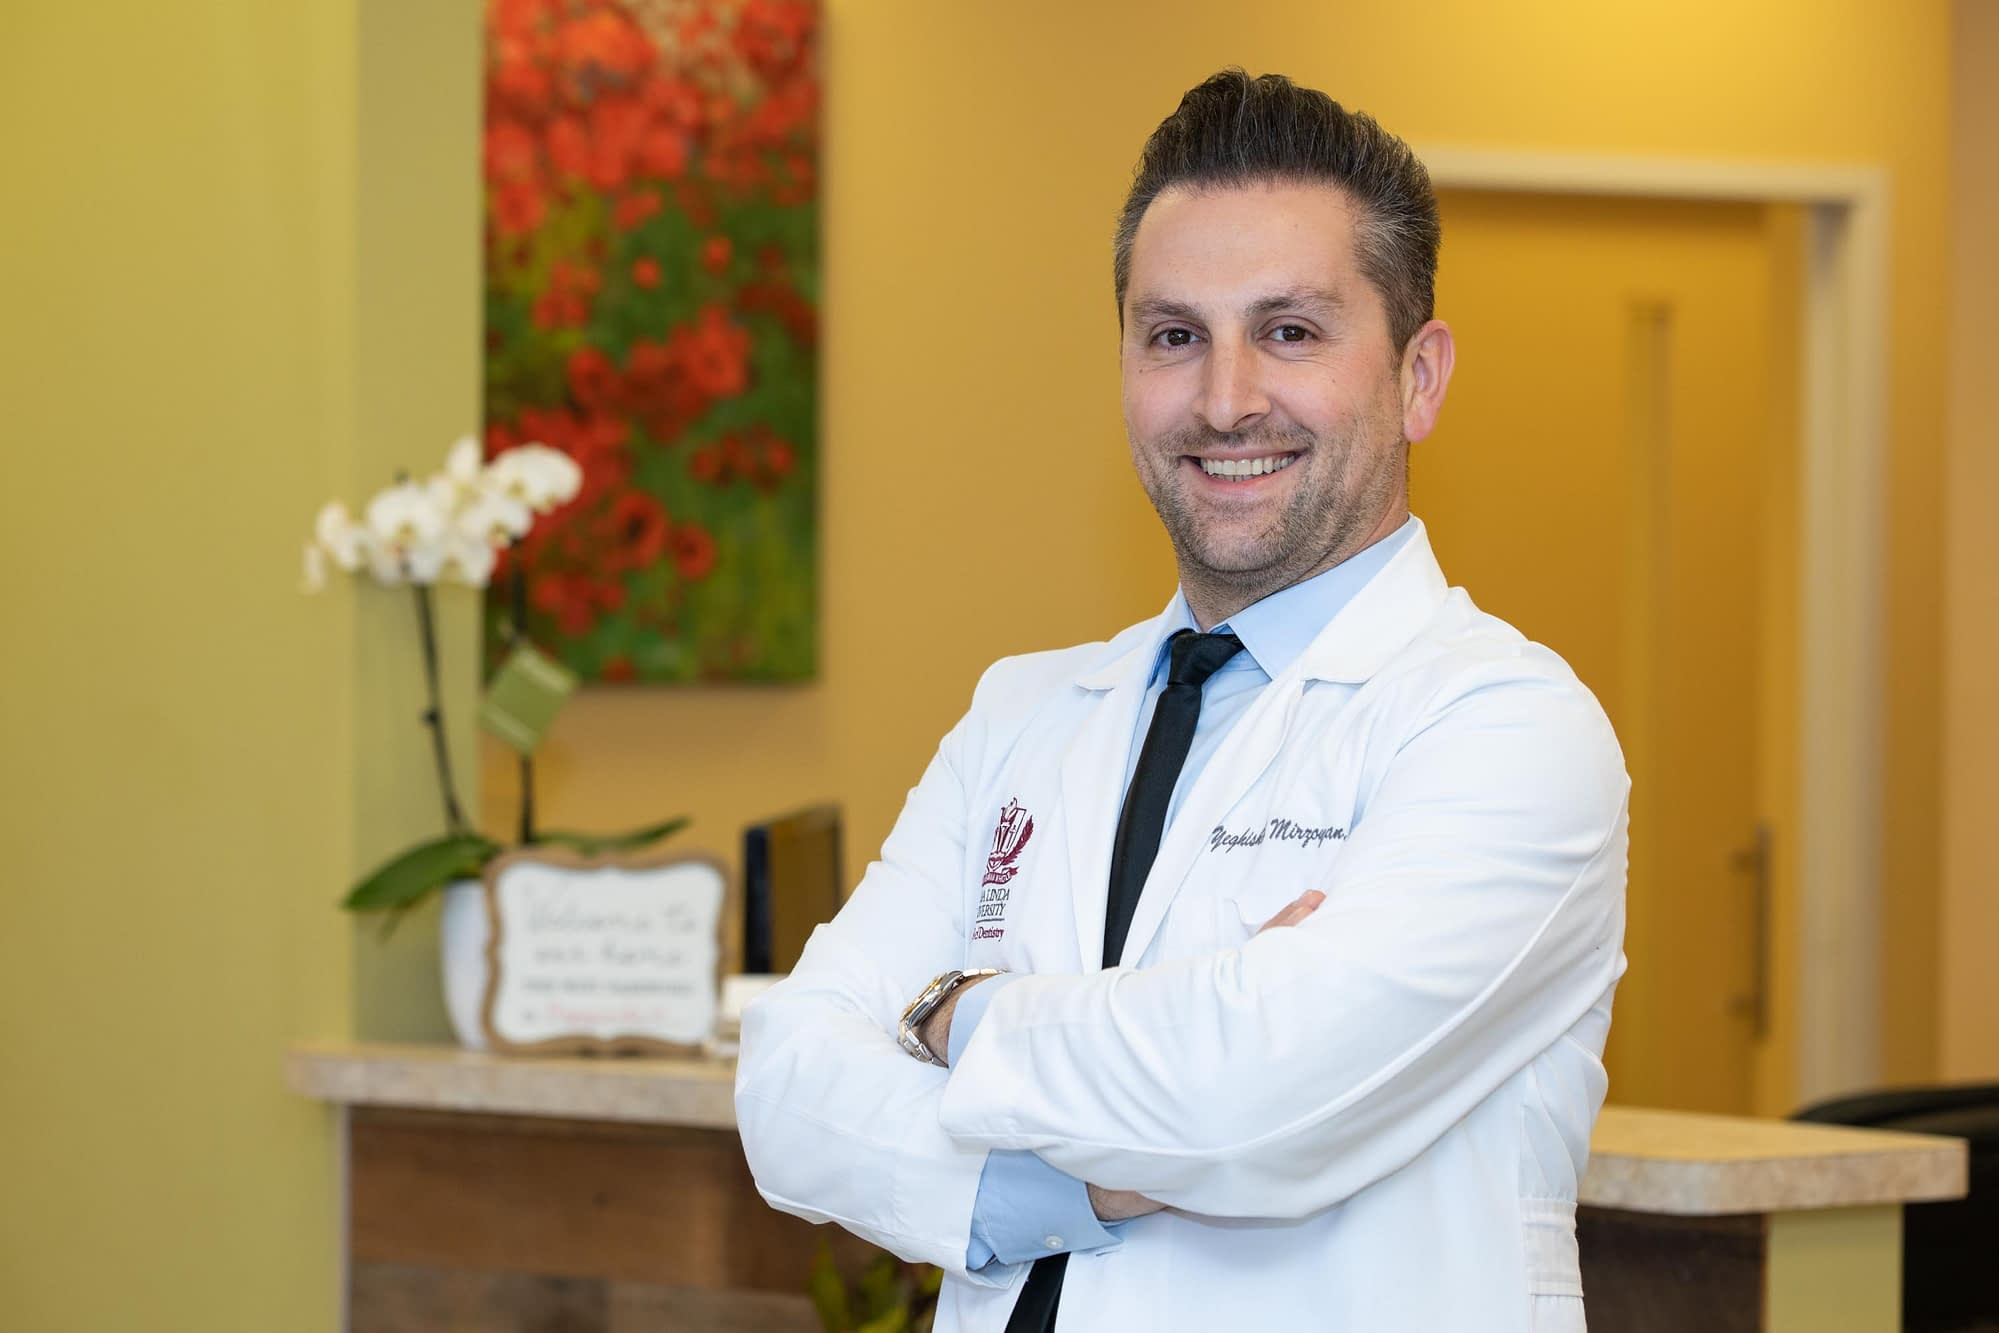 Dr. Mirzoyan talking about dental implants Van Nuys, CA